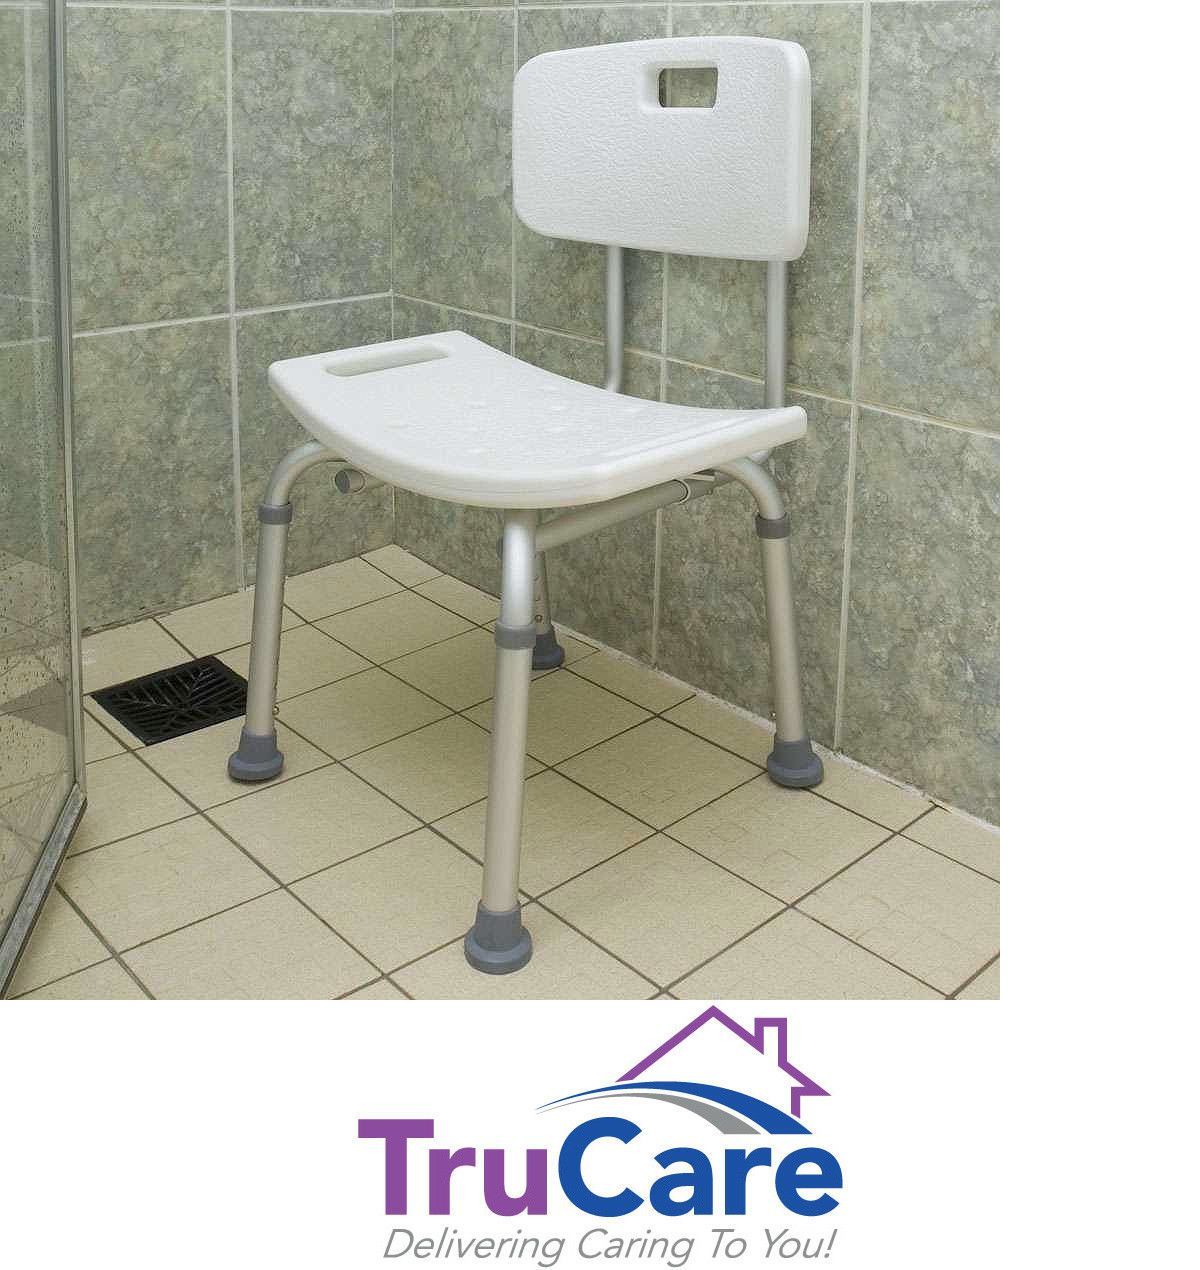 New Shower Chair With Back Medical Shower Chair Adjustable Bath Tub ...